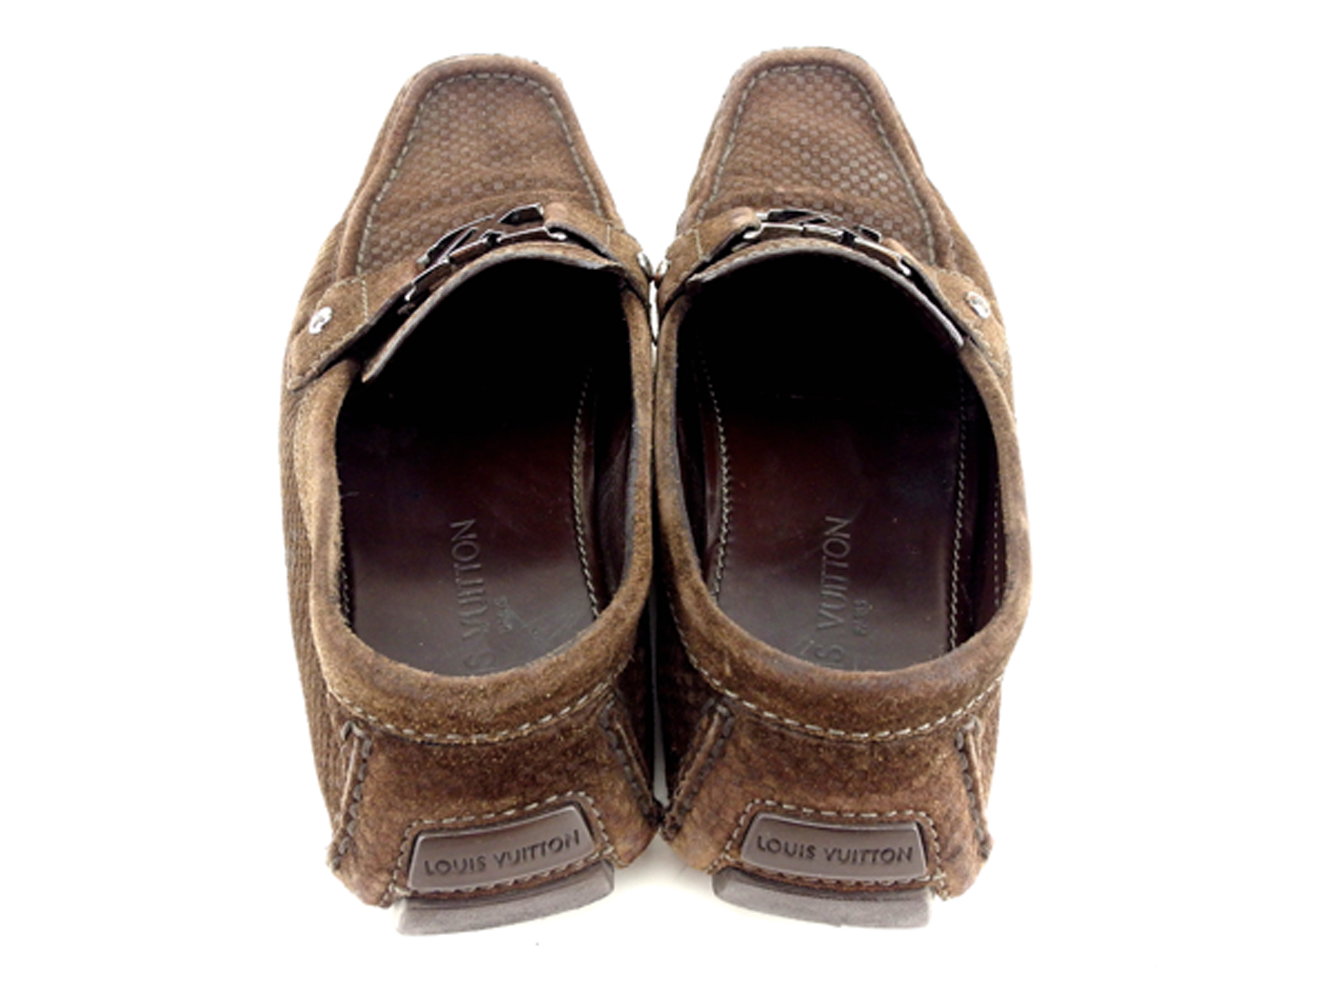 3ded8264 Louis Vuitton Louis Vuitton loafer shoes shoes men LV  プレートドライビングダミエブラウンシルバースエード popularity sale H577